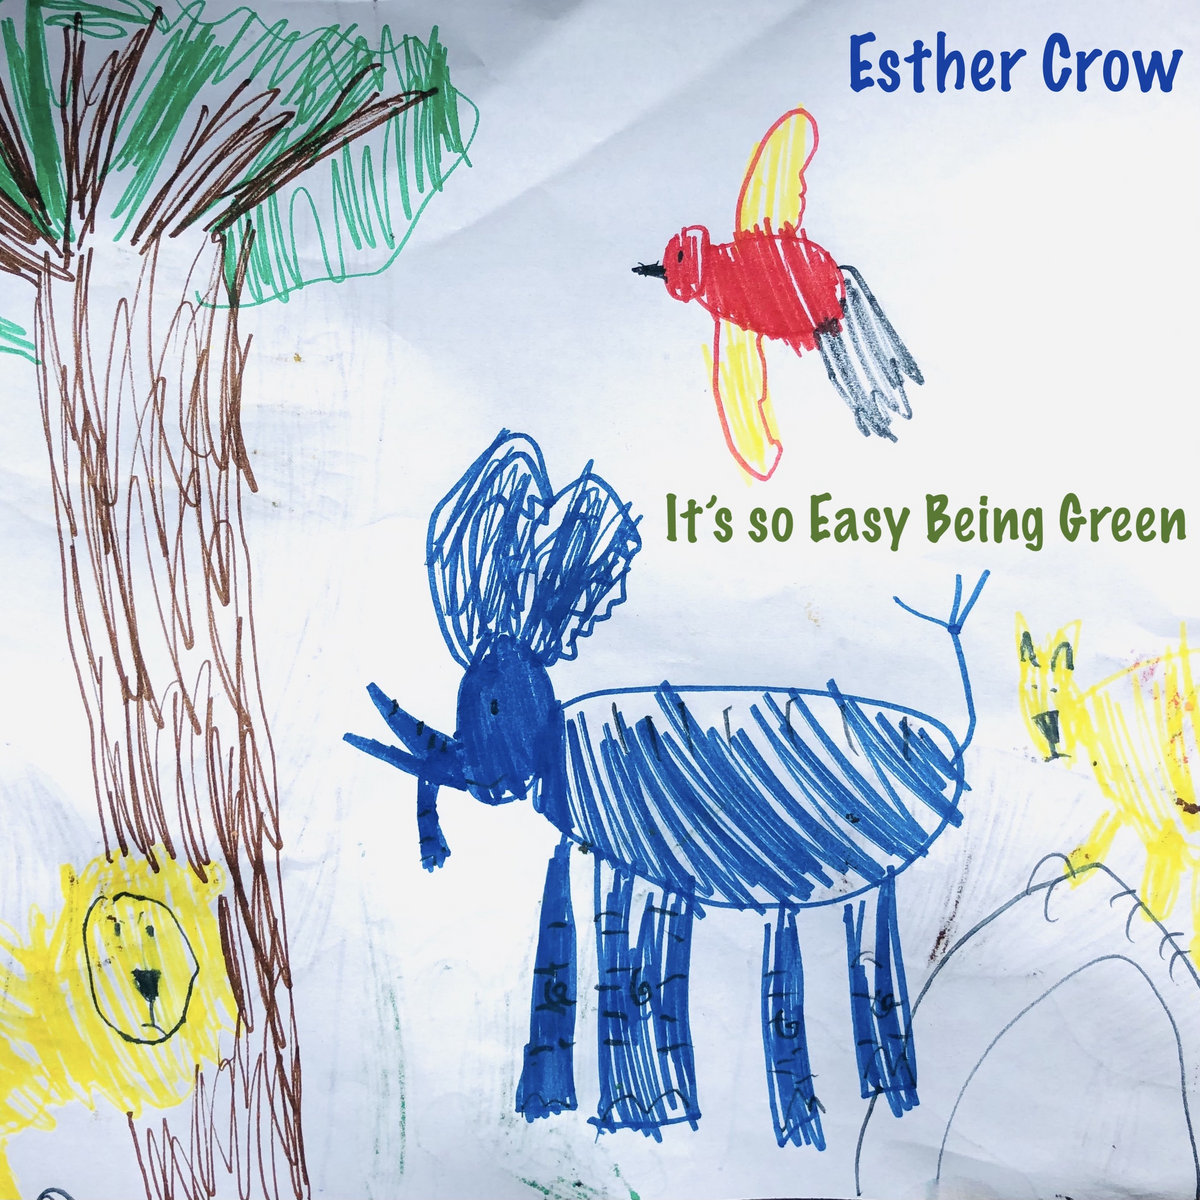 It's so Easy Being Green by Esther Crow